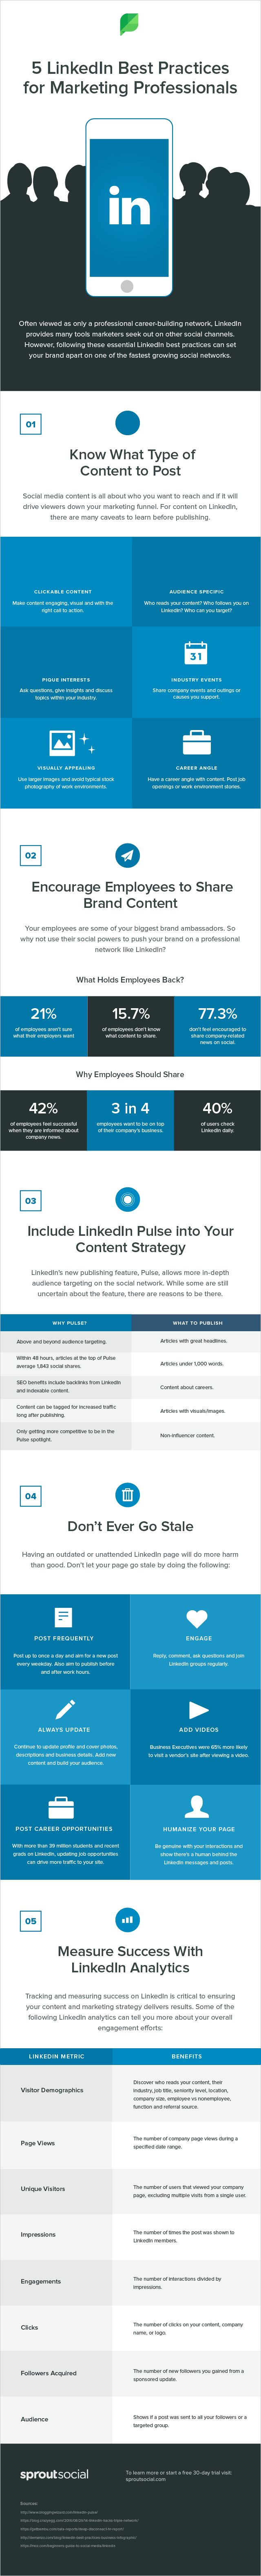 5 linkedin best practices